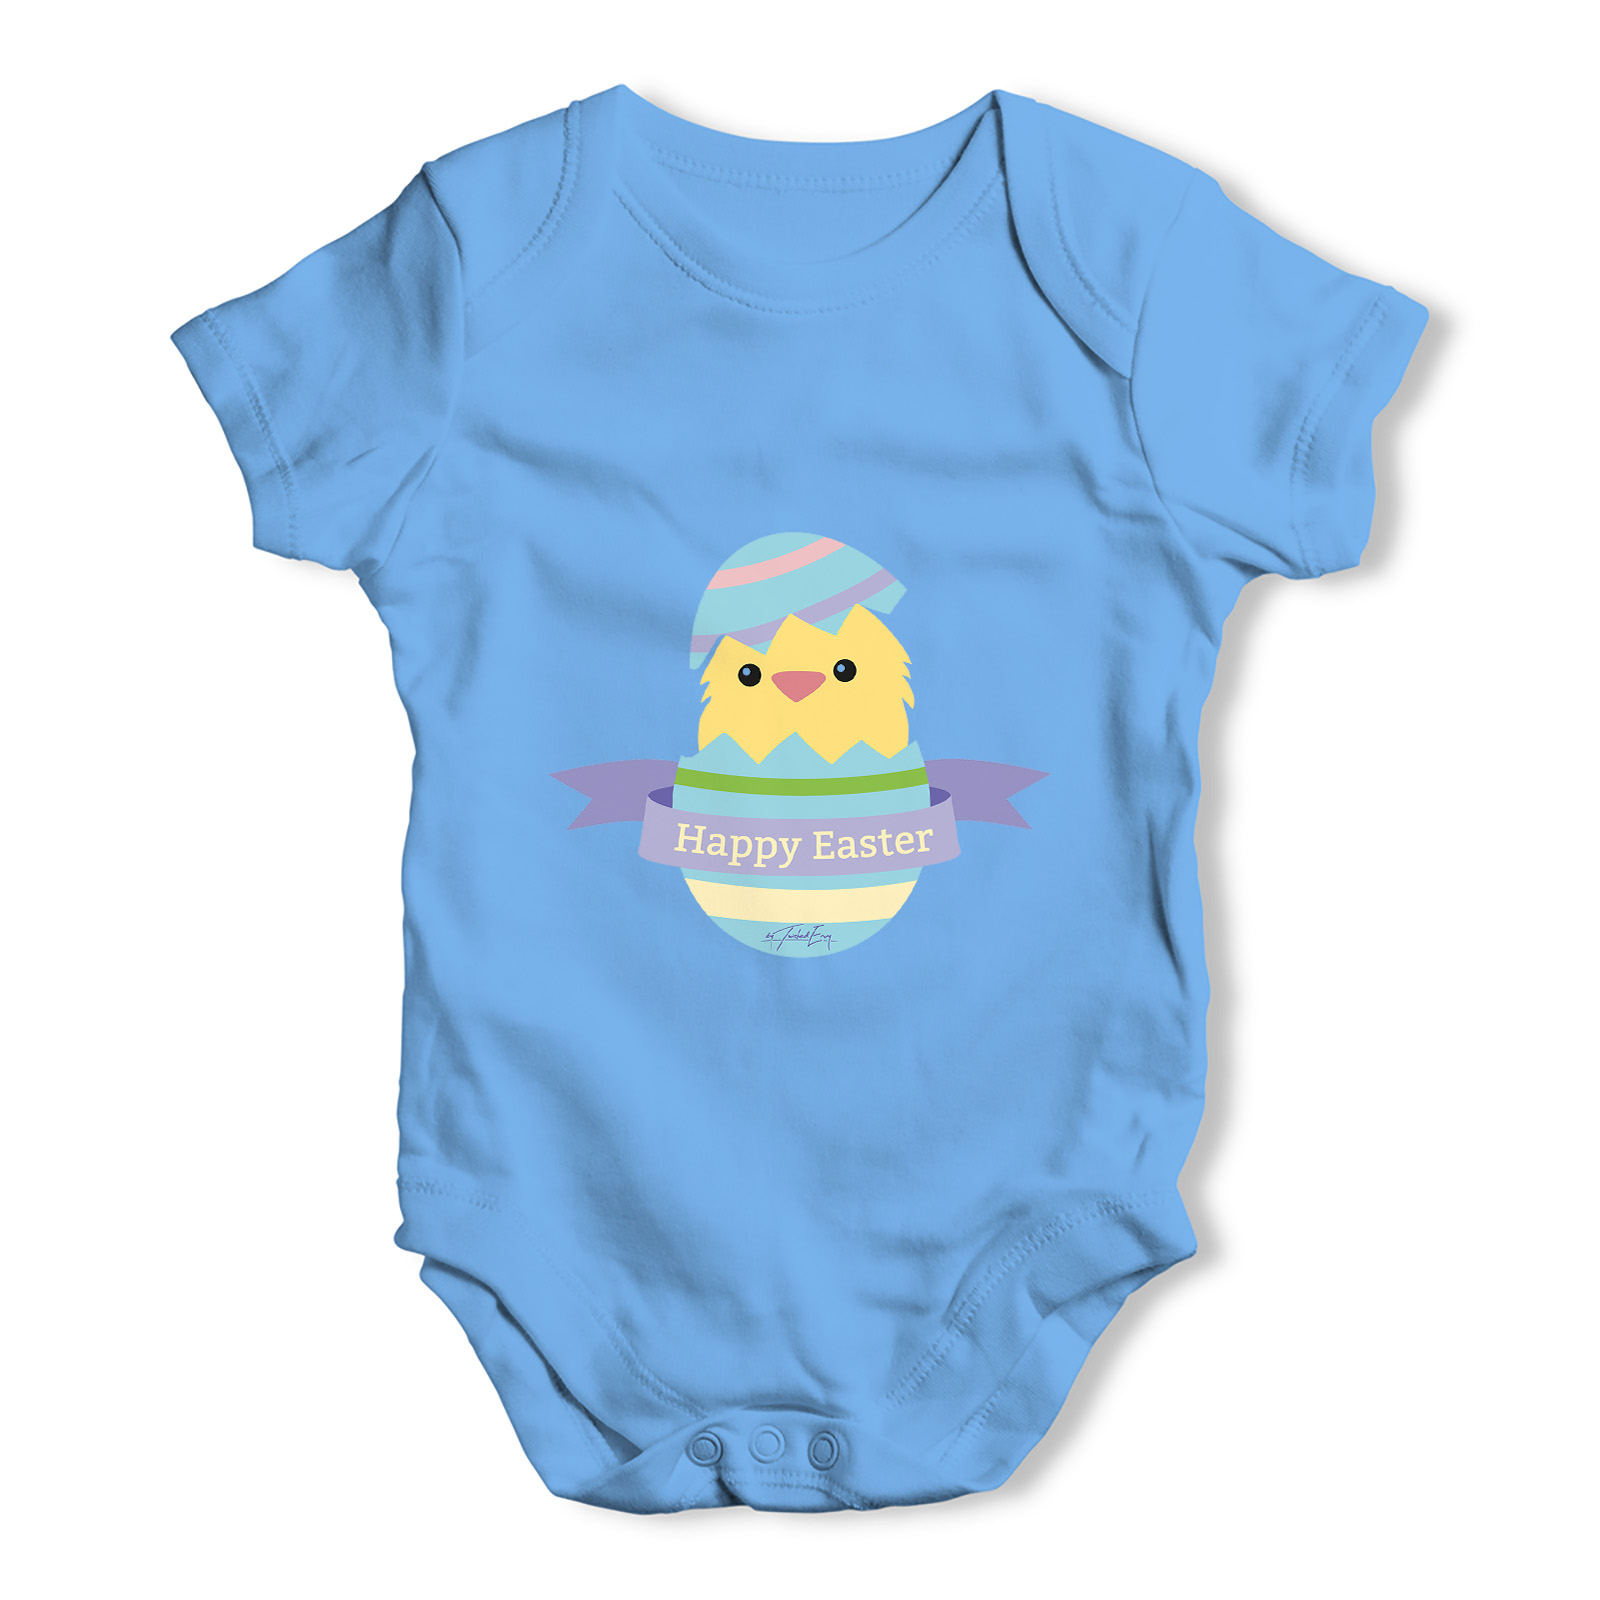 Funny Infant Baby Bodysuit Happy Easter Chick Hatching Baby Unisex Baby Grow Bodysuit